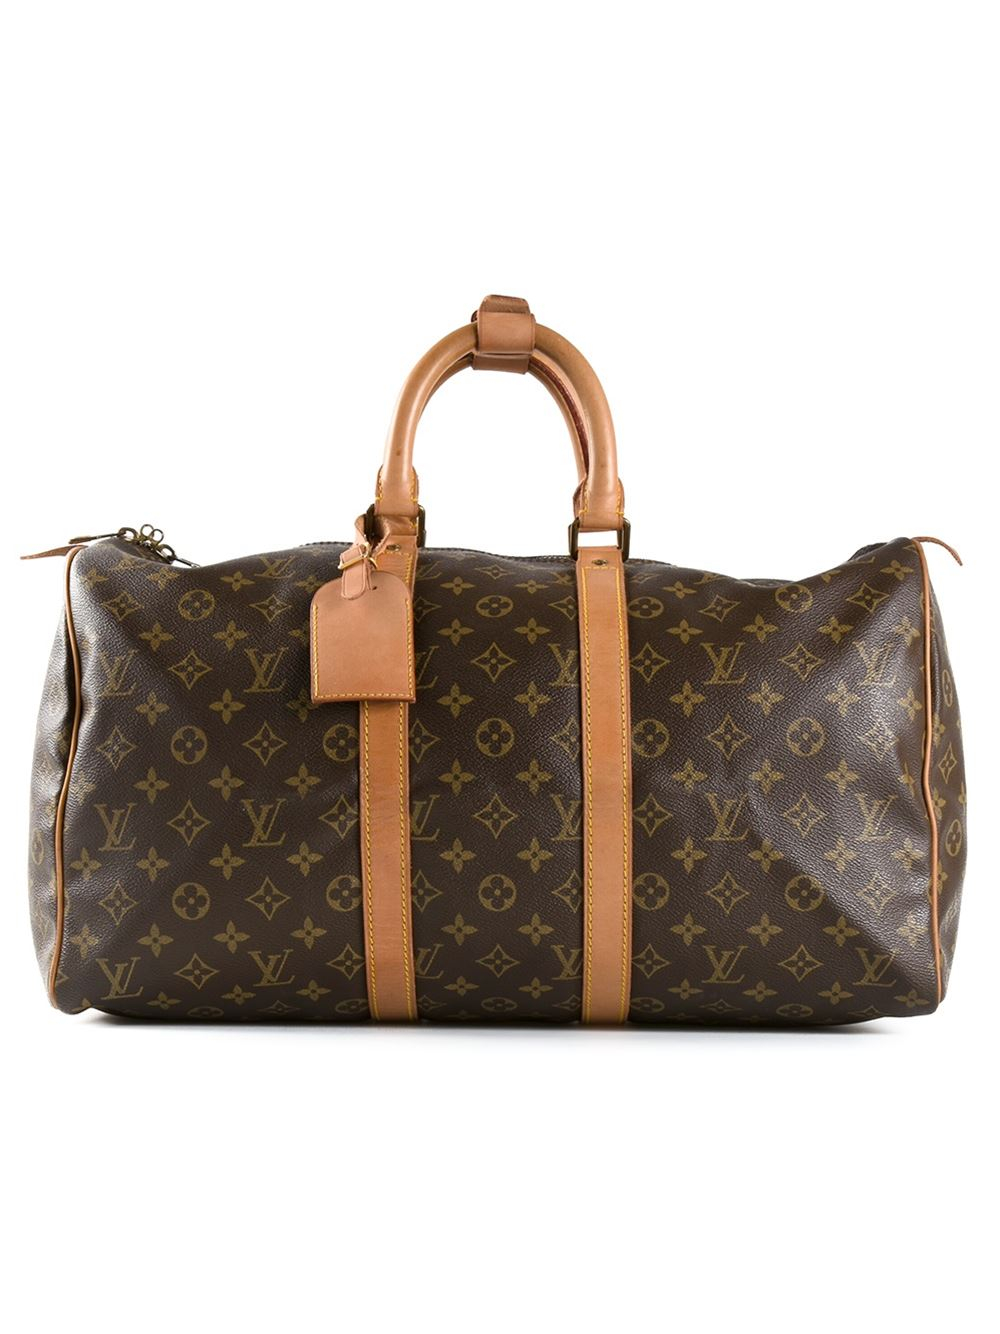 louis vuitton monogram 39 45 39 keepall bag in brown lyst. Black Bedroom Furniture Sets. Home Design Ideas